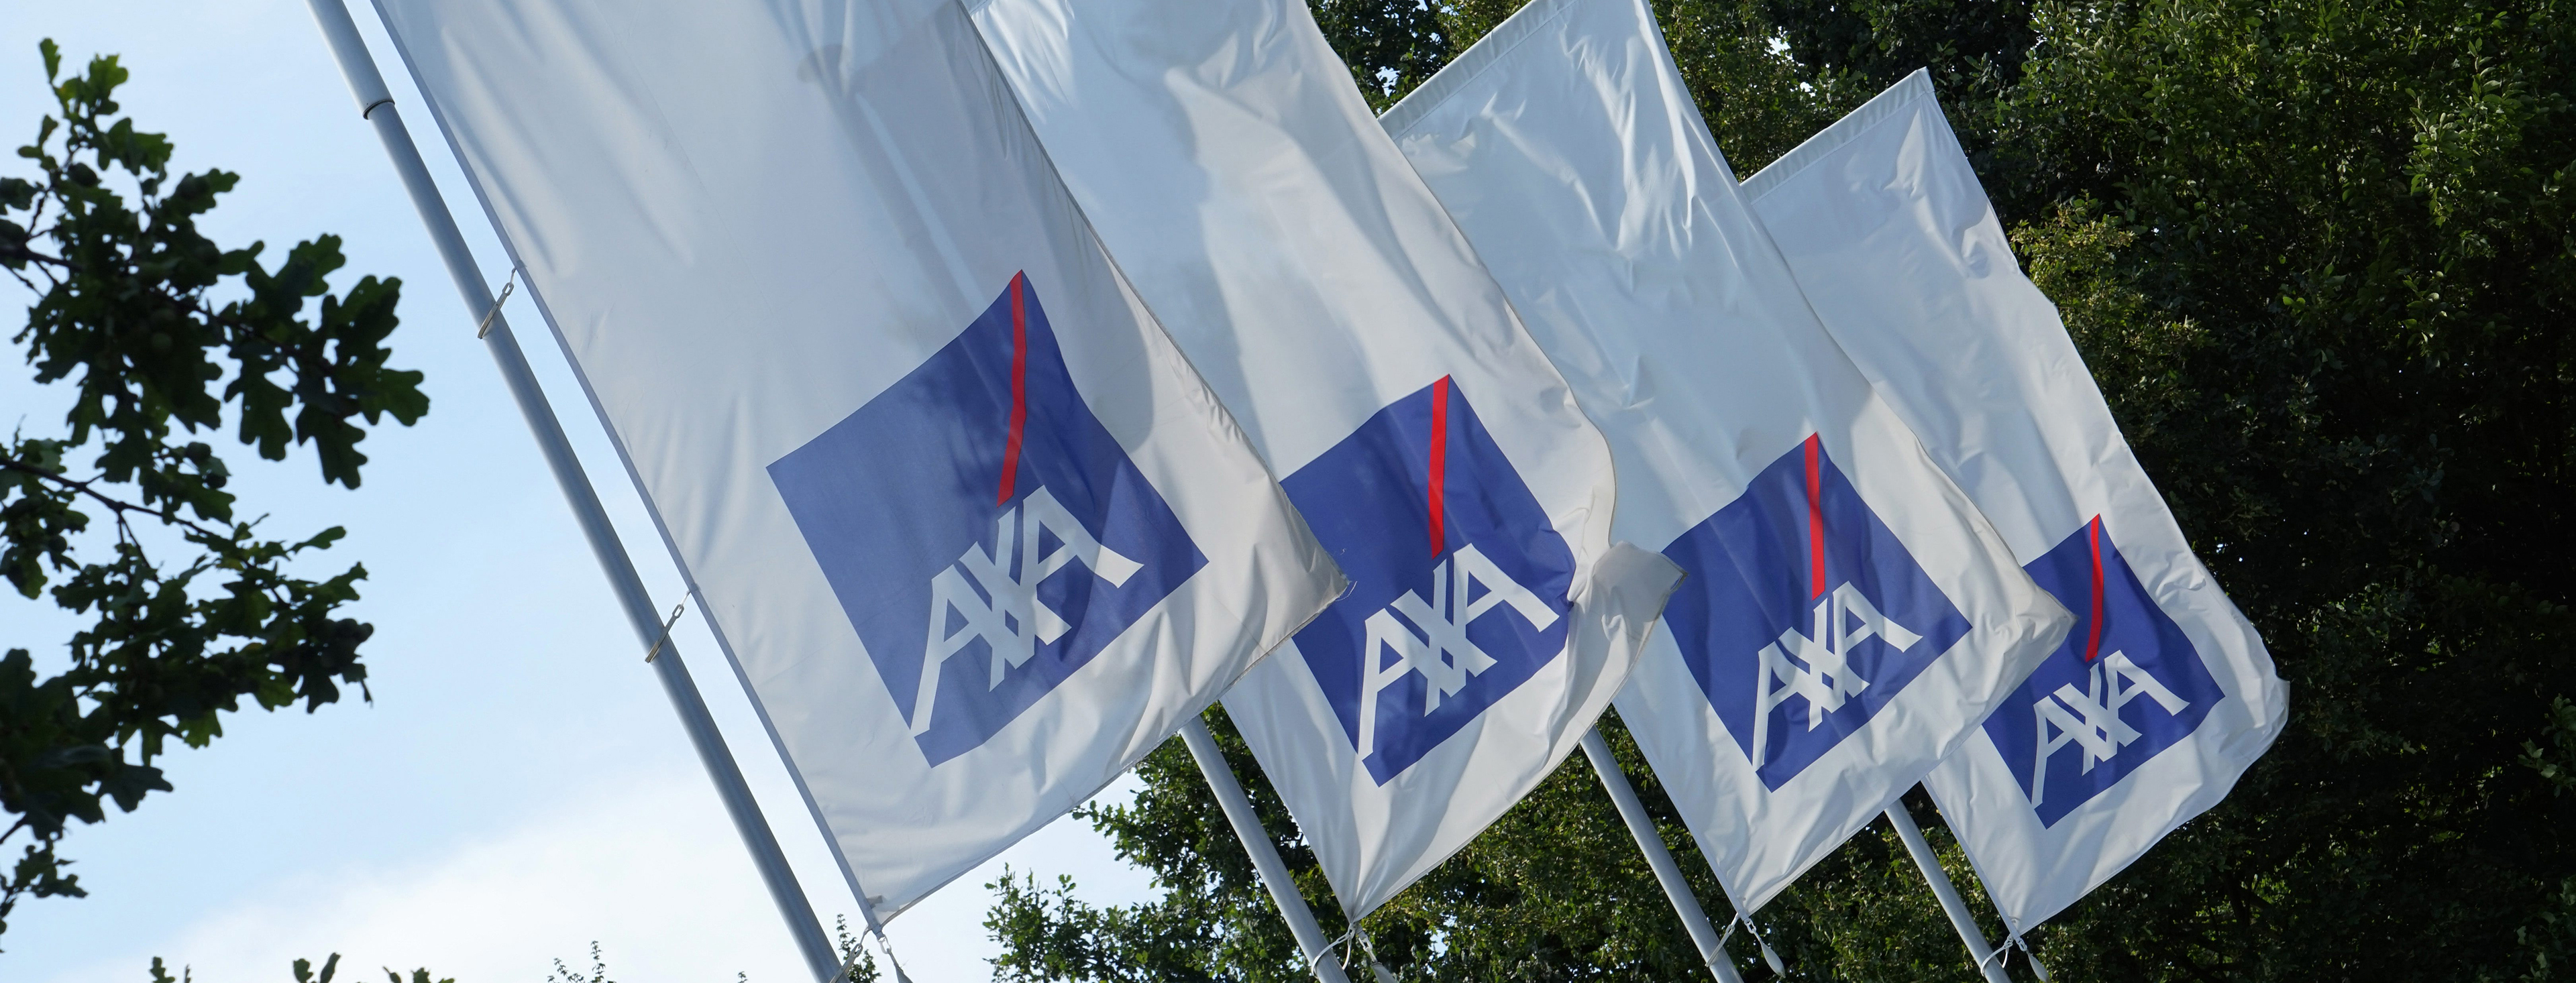 Germany: Headquarters AXA Insurance, Cologne